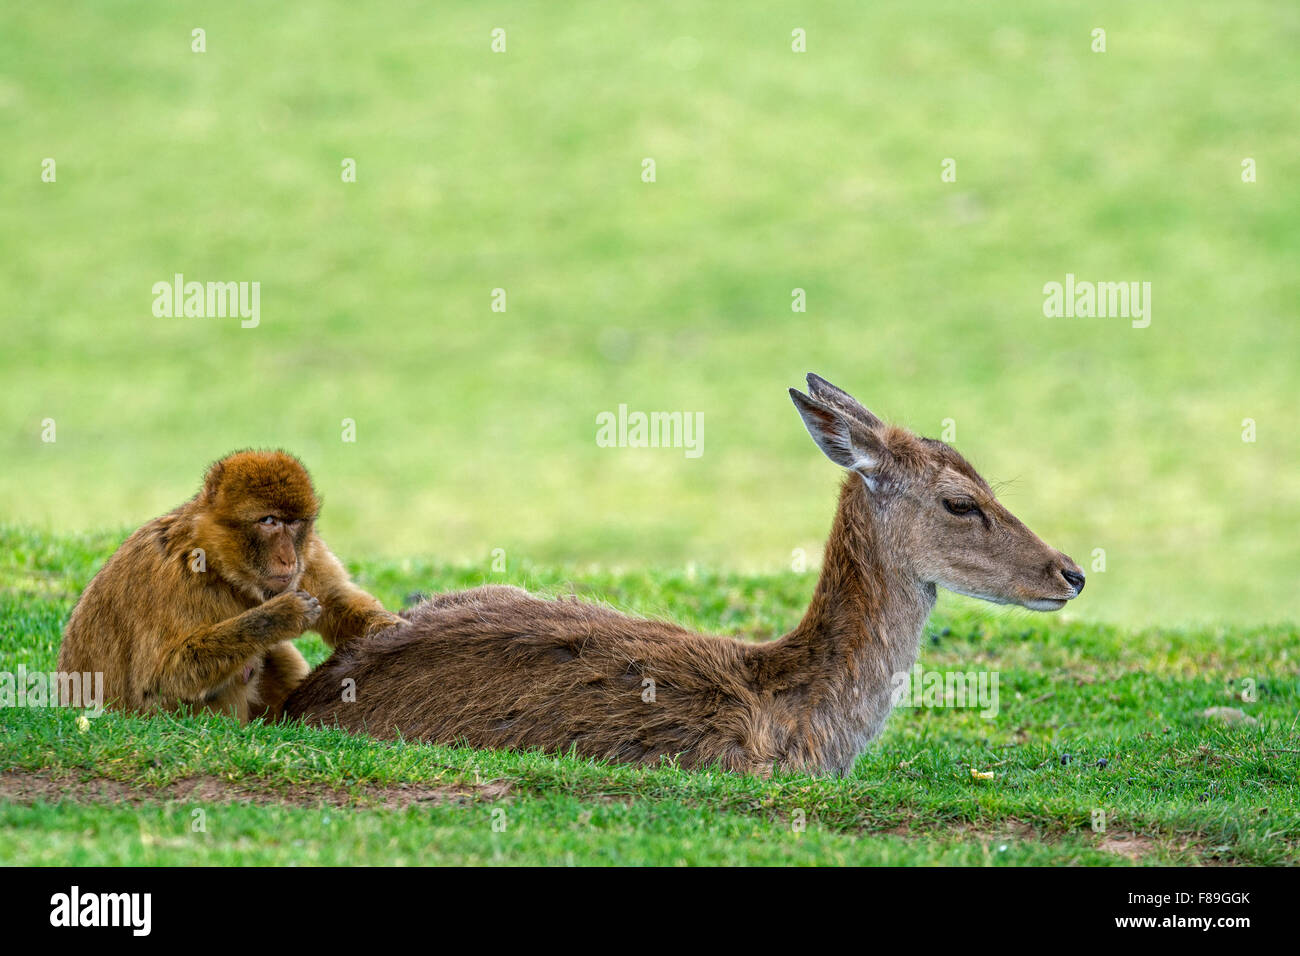 Barbary macaque / Barbary ape / magot (Macaca sylvanus) monkey species native to Northern Africa and Gibraltar grooming - Stock Image